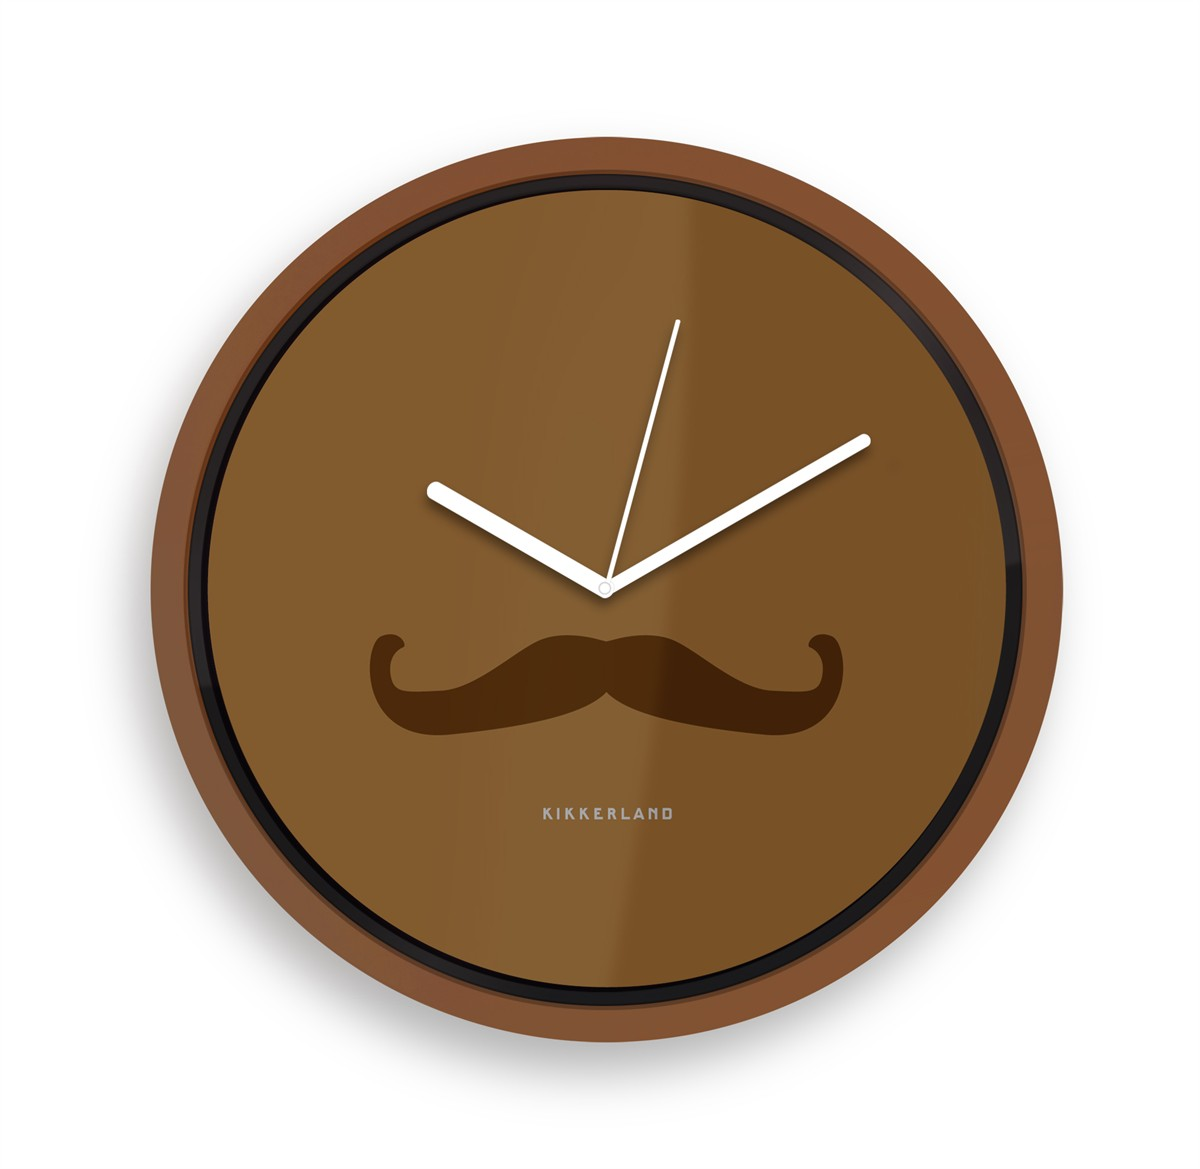 horloge murale moustache la moustache d co hipster qui donne l 39 heure super insolite. Black Bedroom Furniture Sets. Home Design Ideas